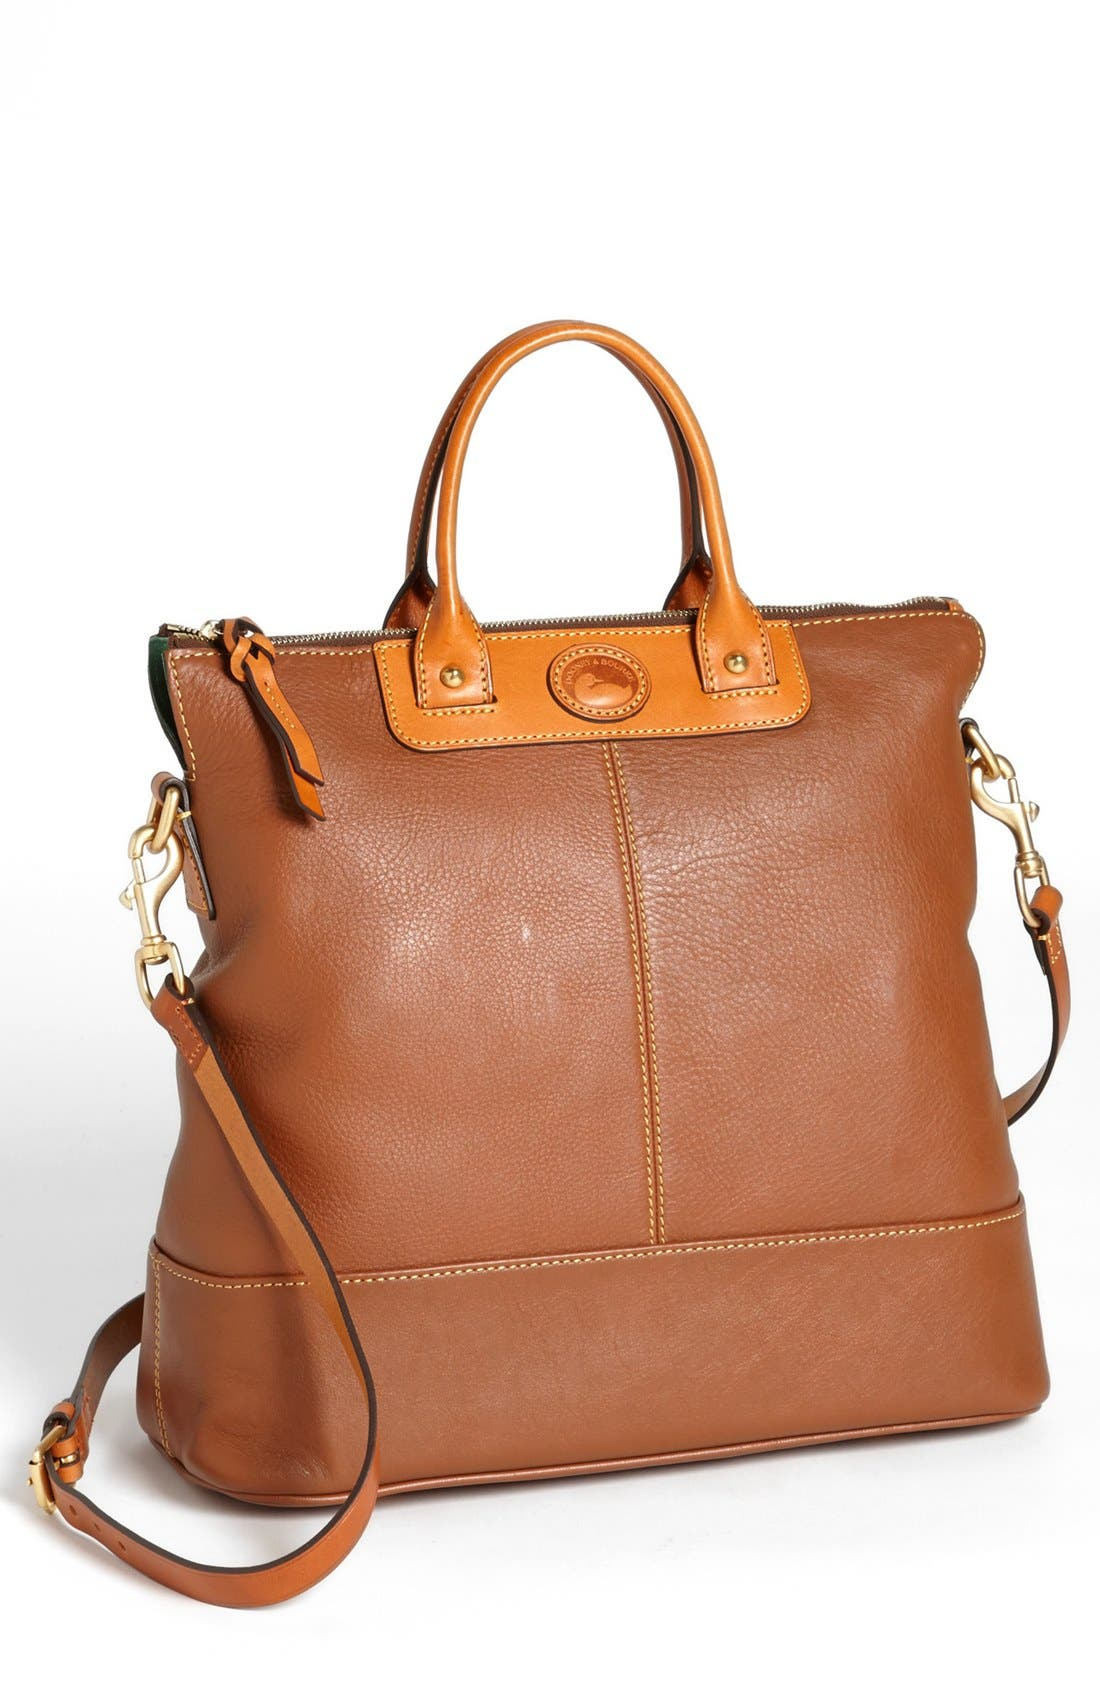 Main Image - Dooney & Bourke Convertible Shopper